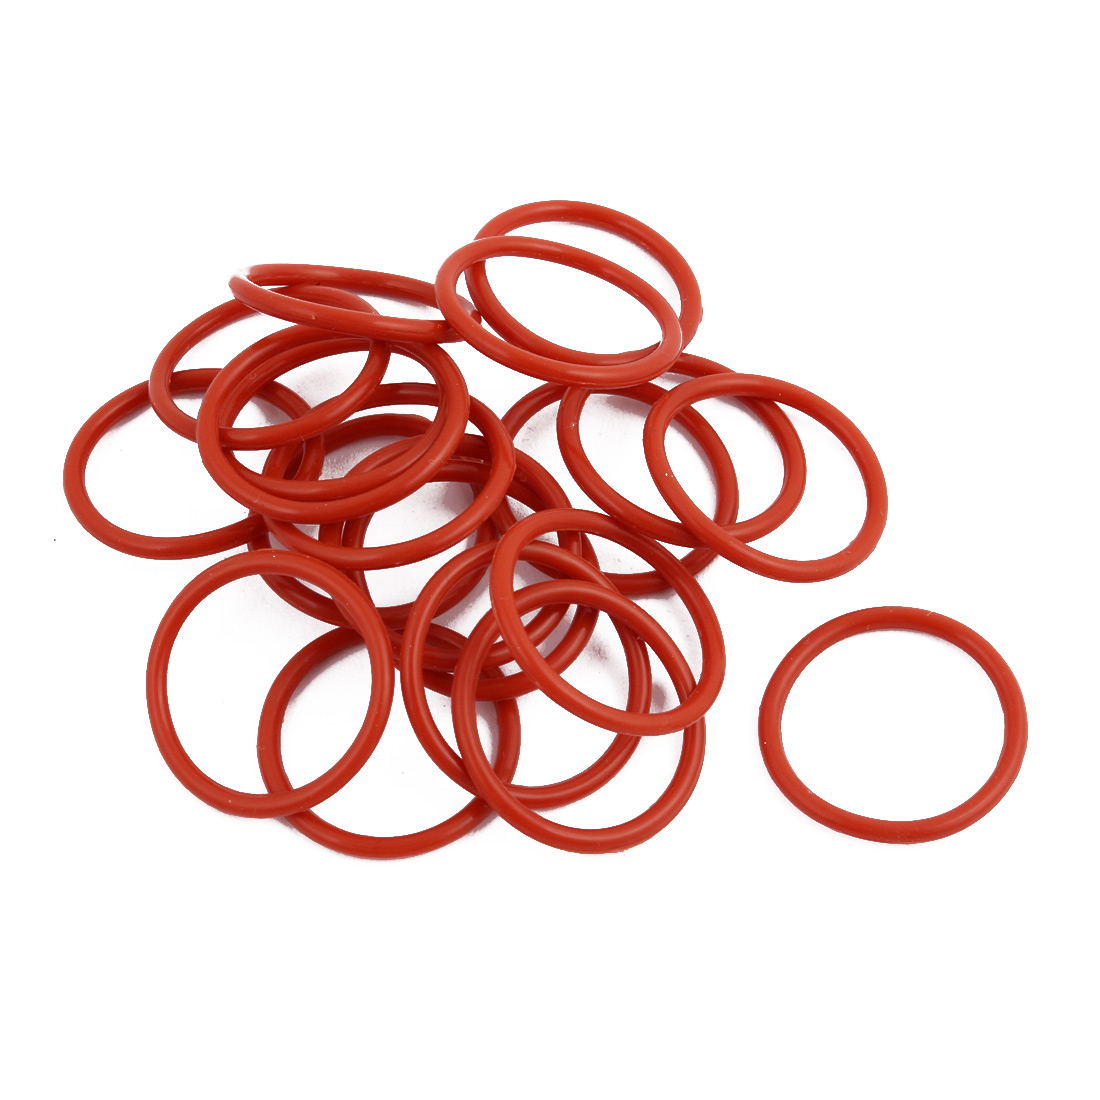 20Pcs Red Round Nitrile Butadiene Rubber NBR O-Ring 23mm OD 1.9mm Width